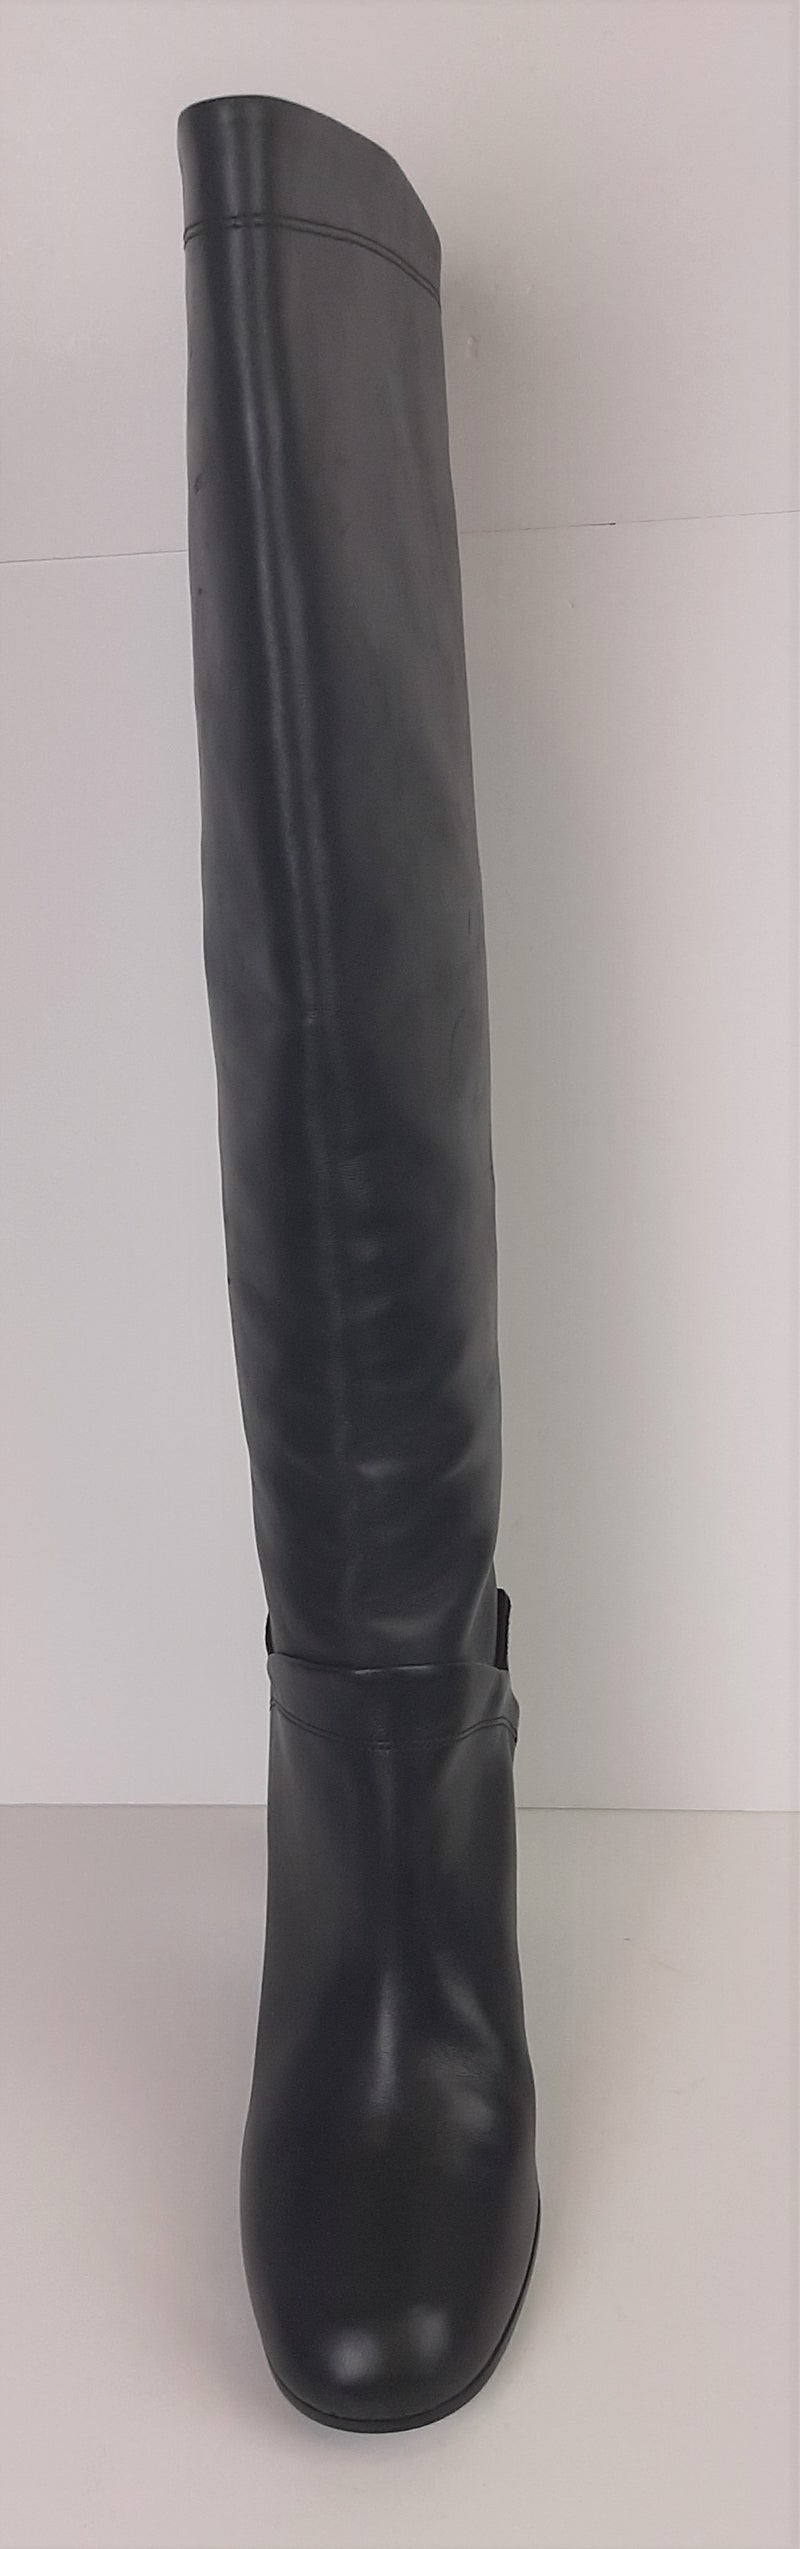 Mark Jacobs Tall Boot  MJ11241